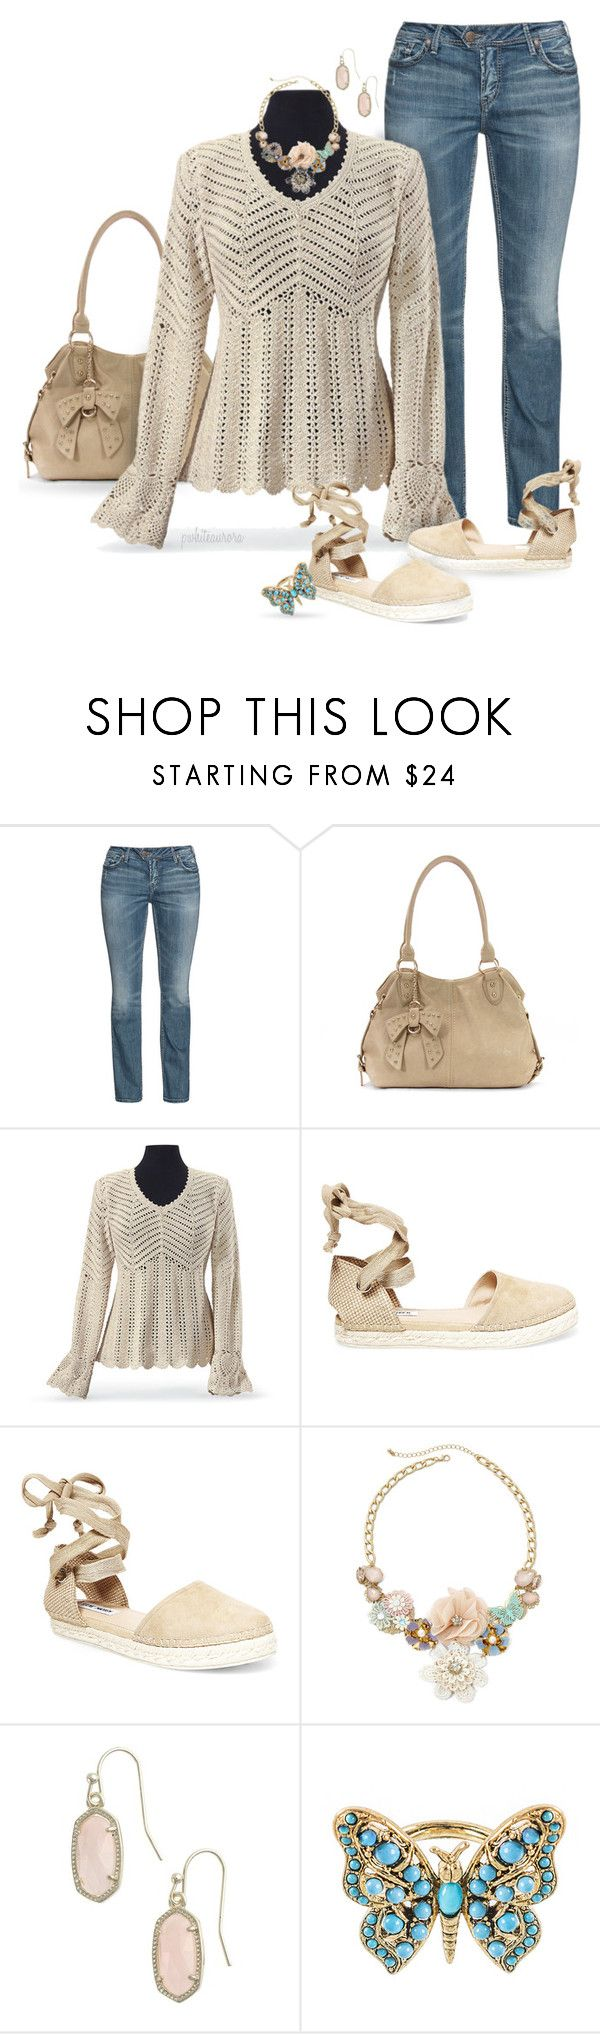 """""""Jeans & a Crocheted Sweater"""" by pwhiteaurora ❤ liked on Polyvore featuring Silver Jeans Co., Steve Madden, Decree and Kendra Scott"""